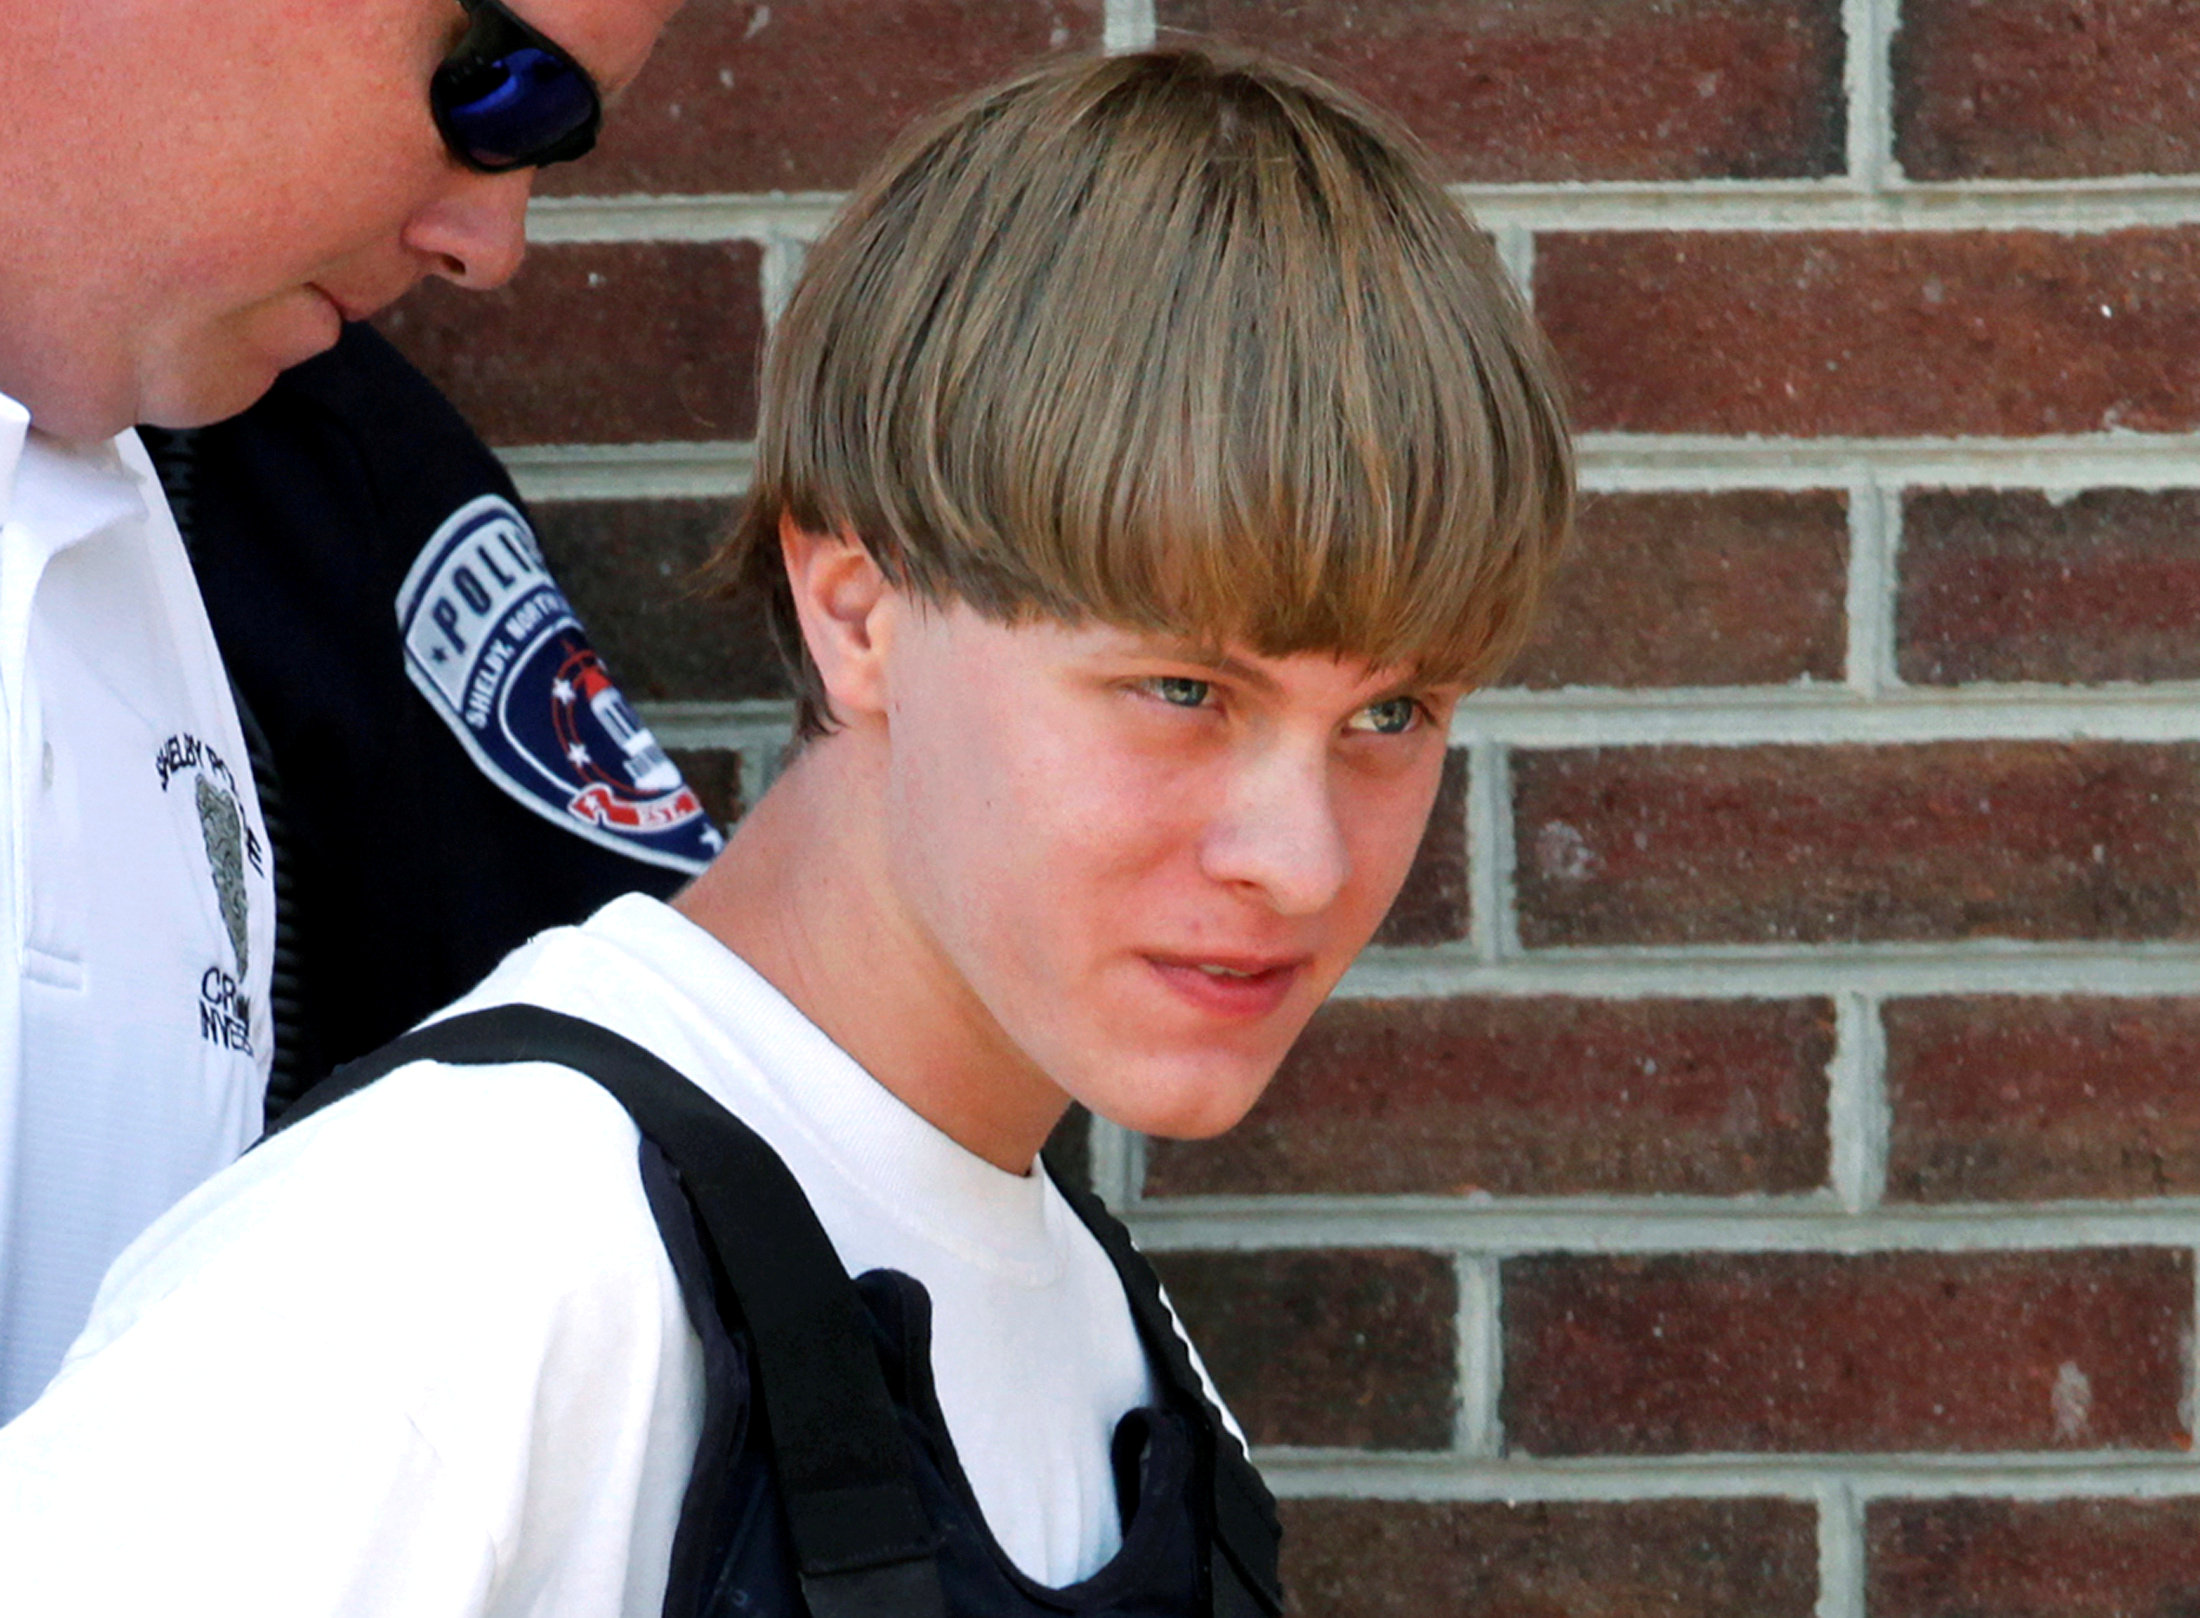 Police lead suspected shooter Dylann Roof into the courthouse in Shelby, North Carolina,